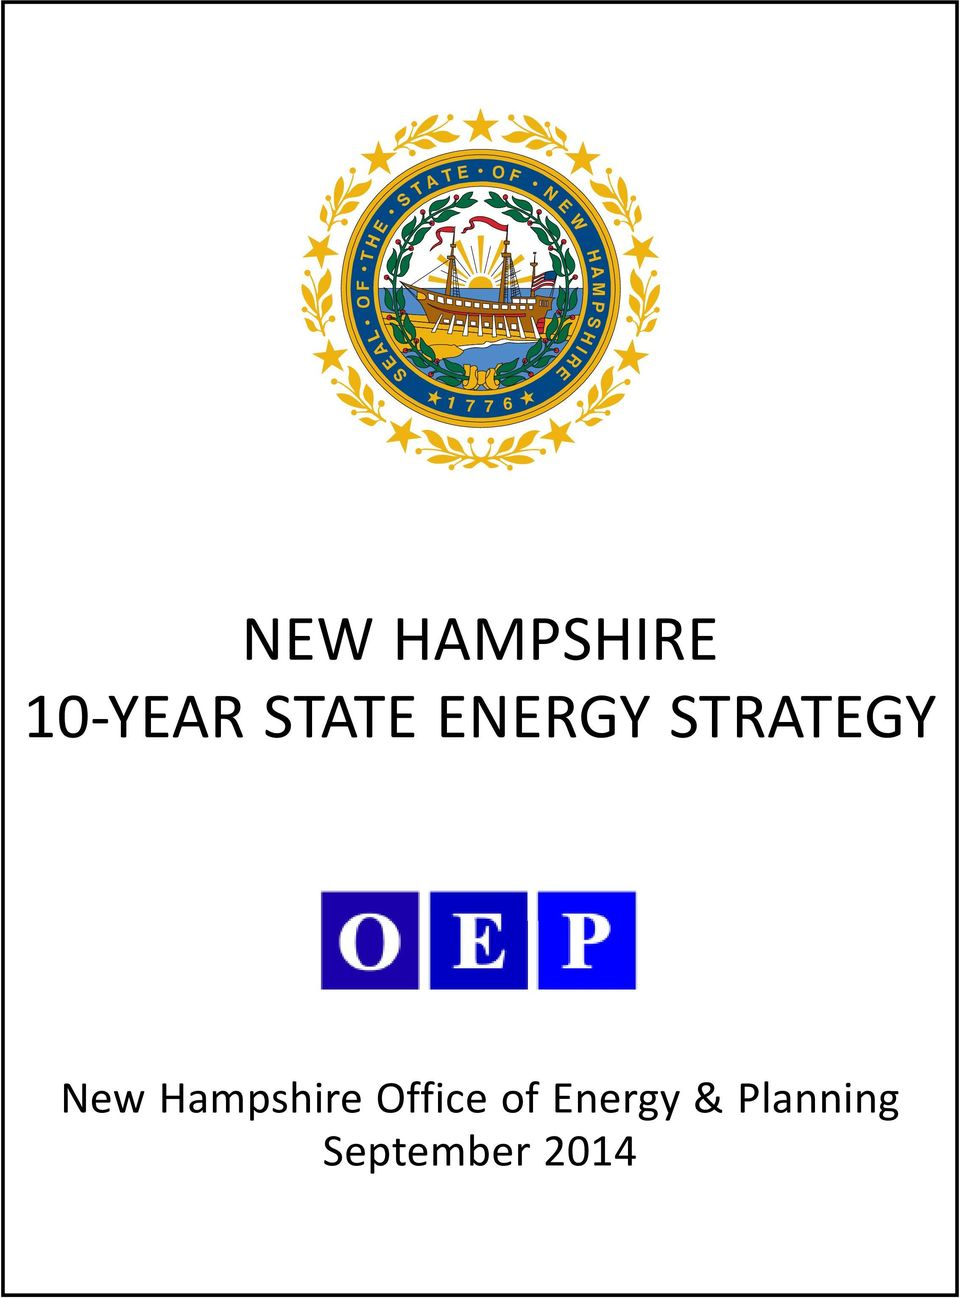 New Hampshire Office of